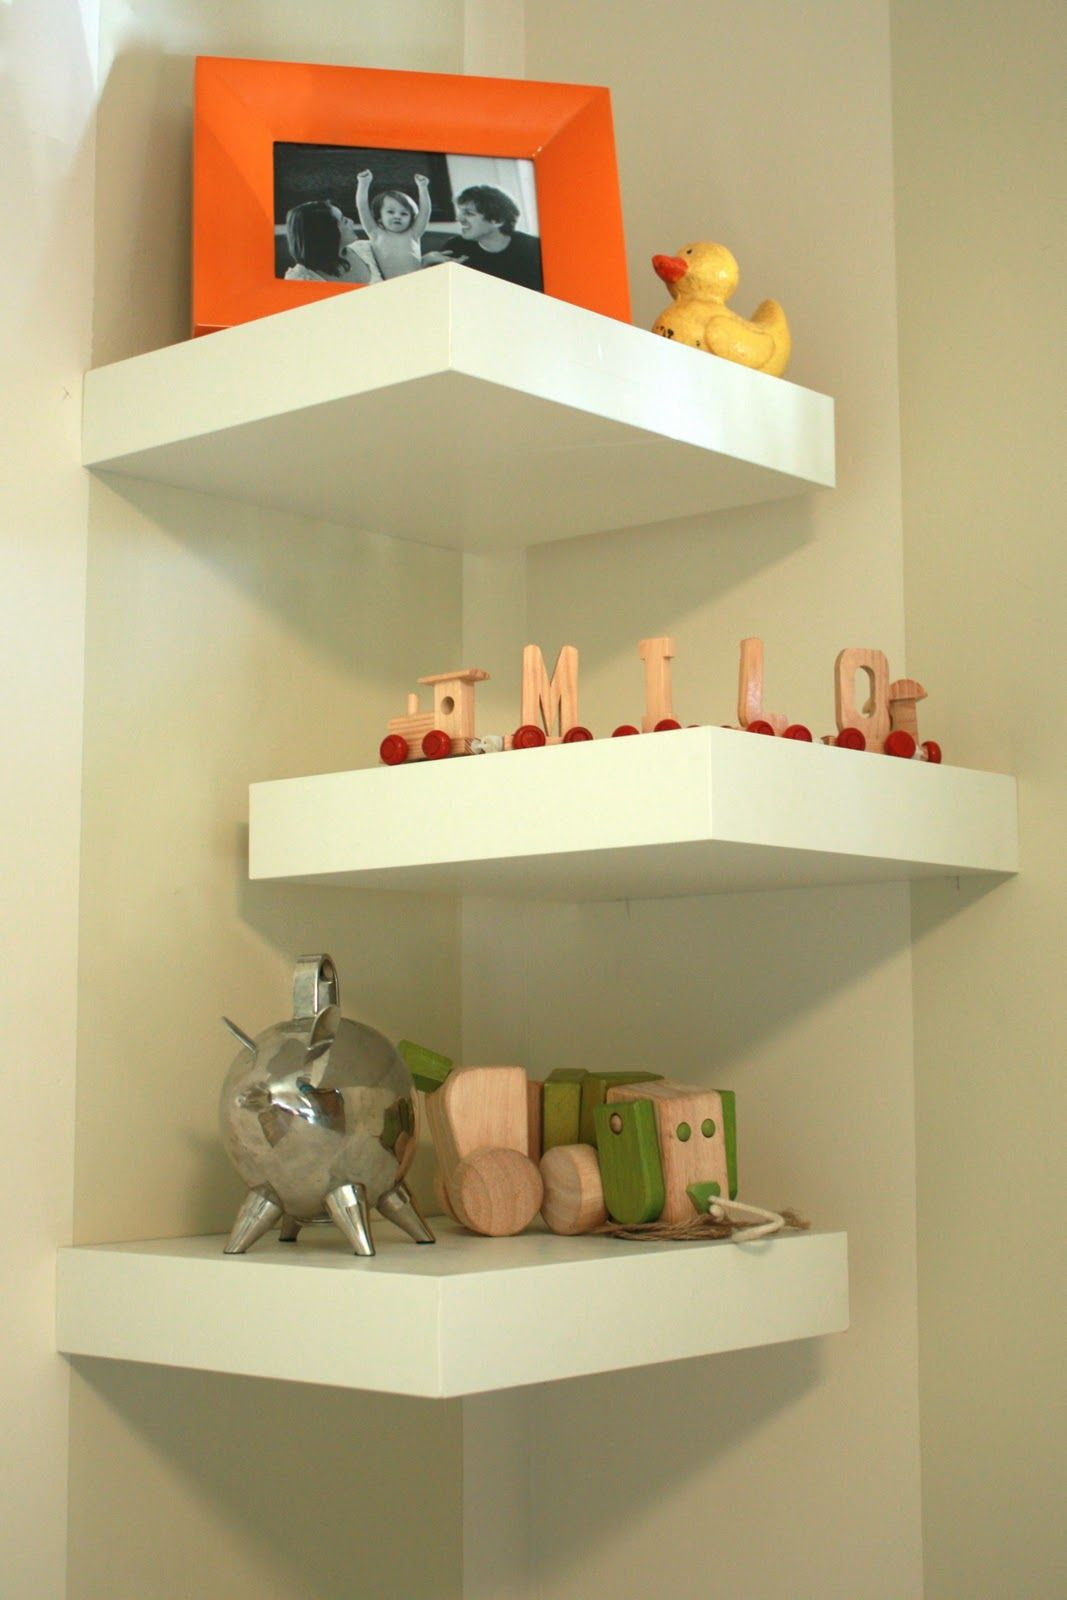 Creative Diy Minimalist White Floating Corner Wall Shelves For Kids Room Decoration Decoration Qdlak Ikea Lack Shelves Corner Shelf Design Diy Corner Shelf